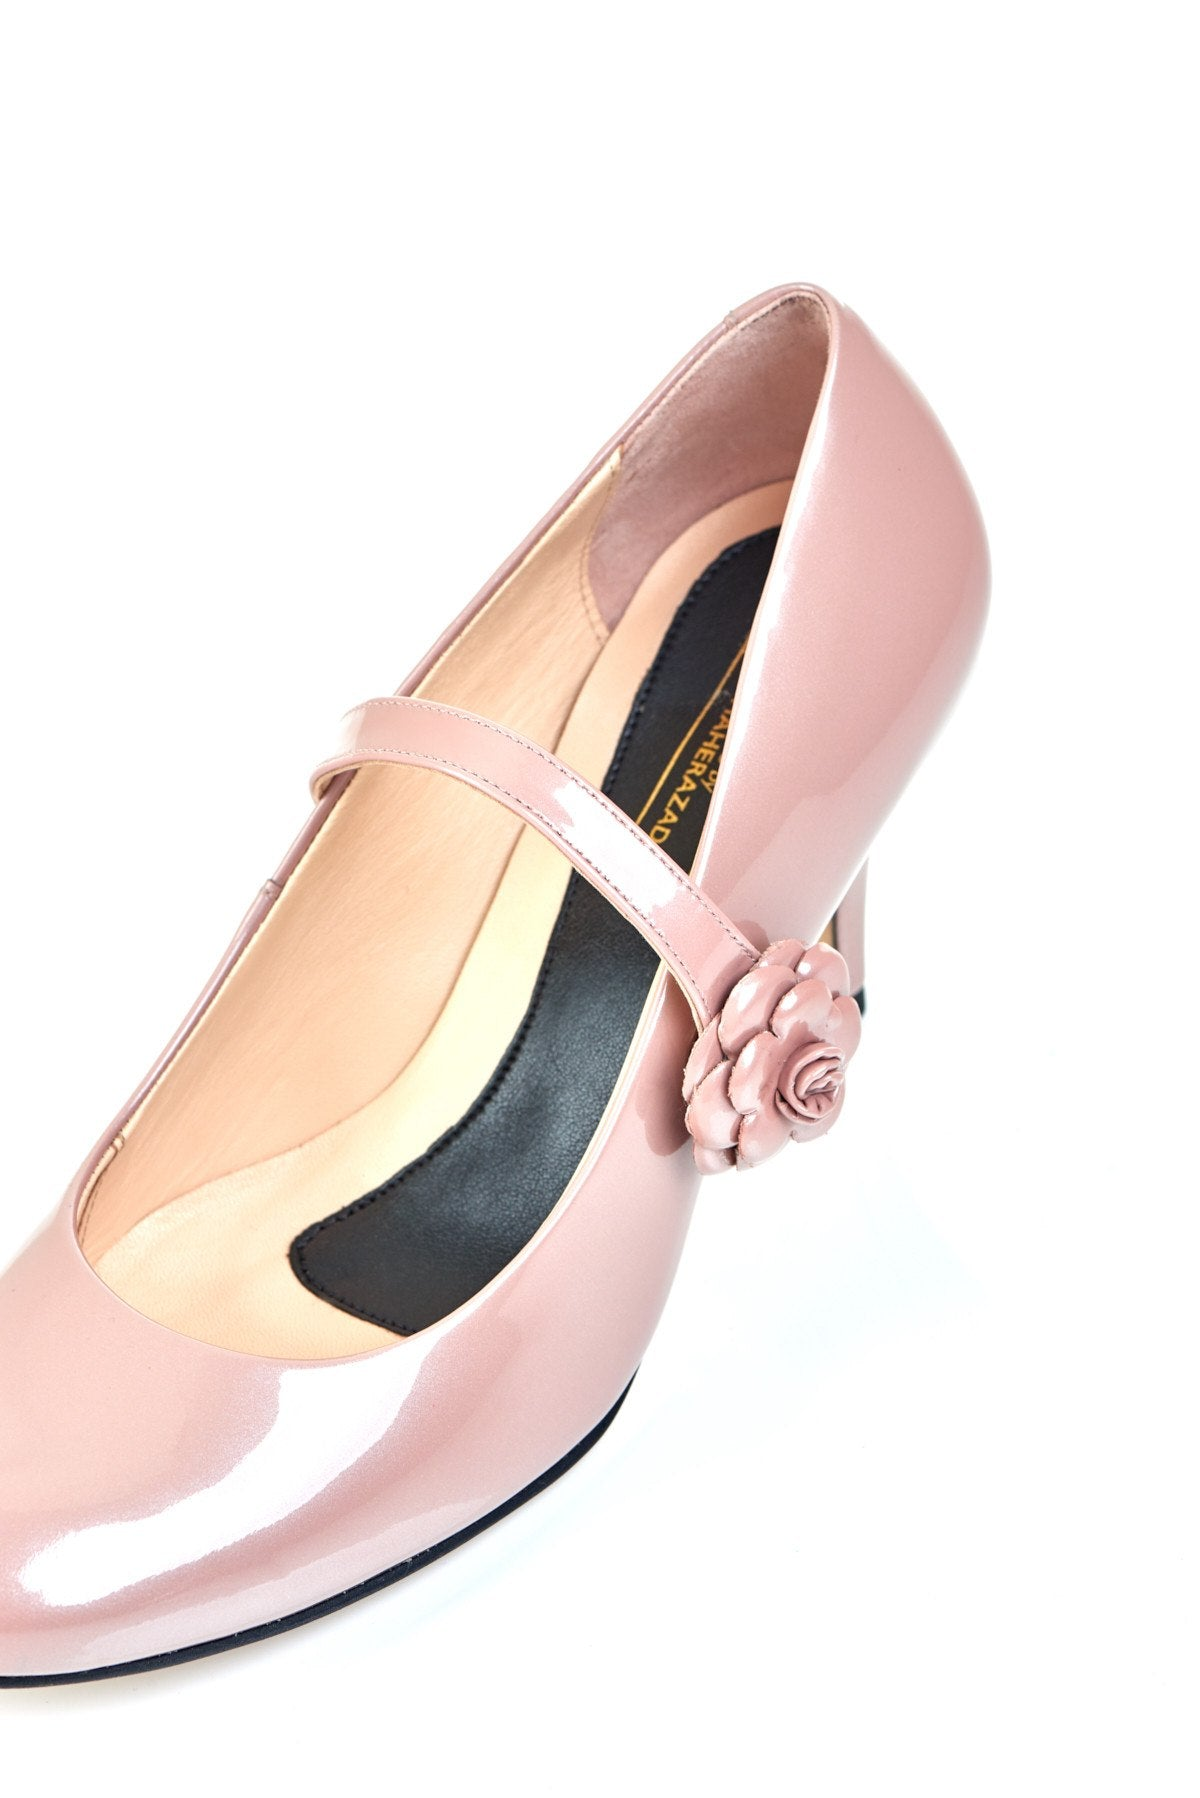 Don't Wait Up - 18 Hour Heels - Blush Leather - Shoes by Shaherazad